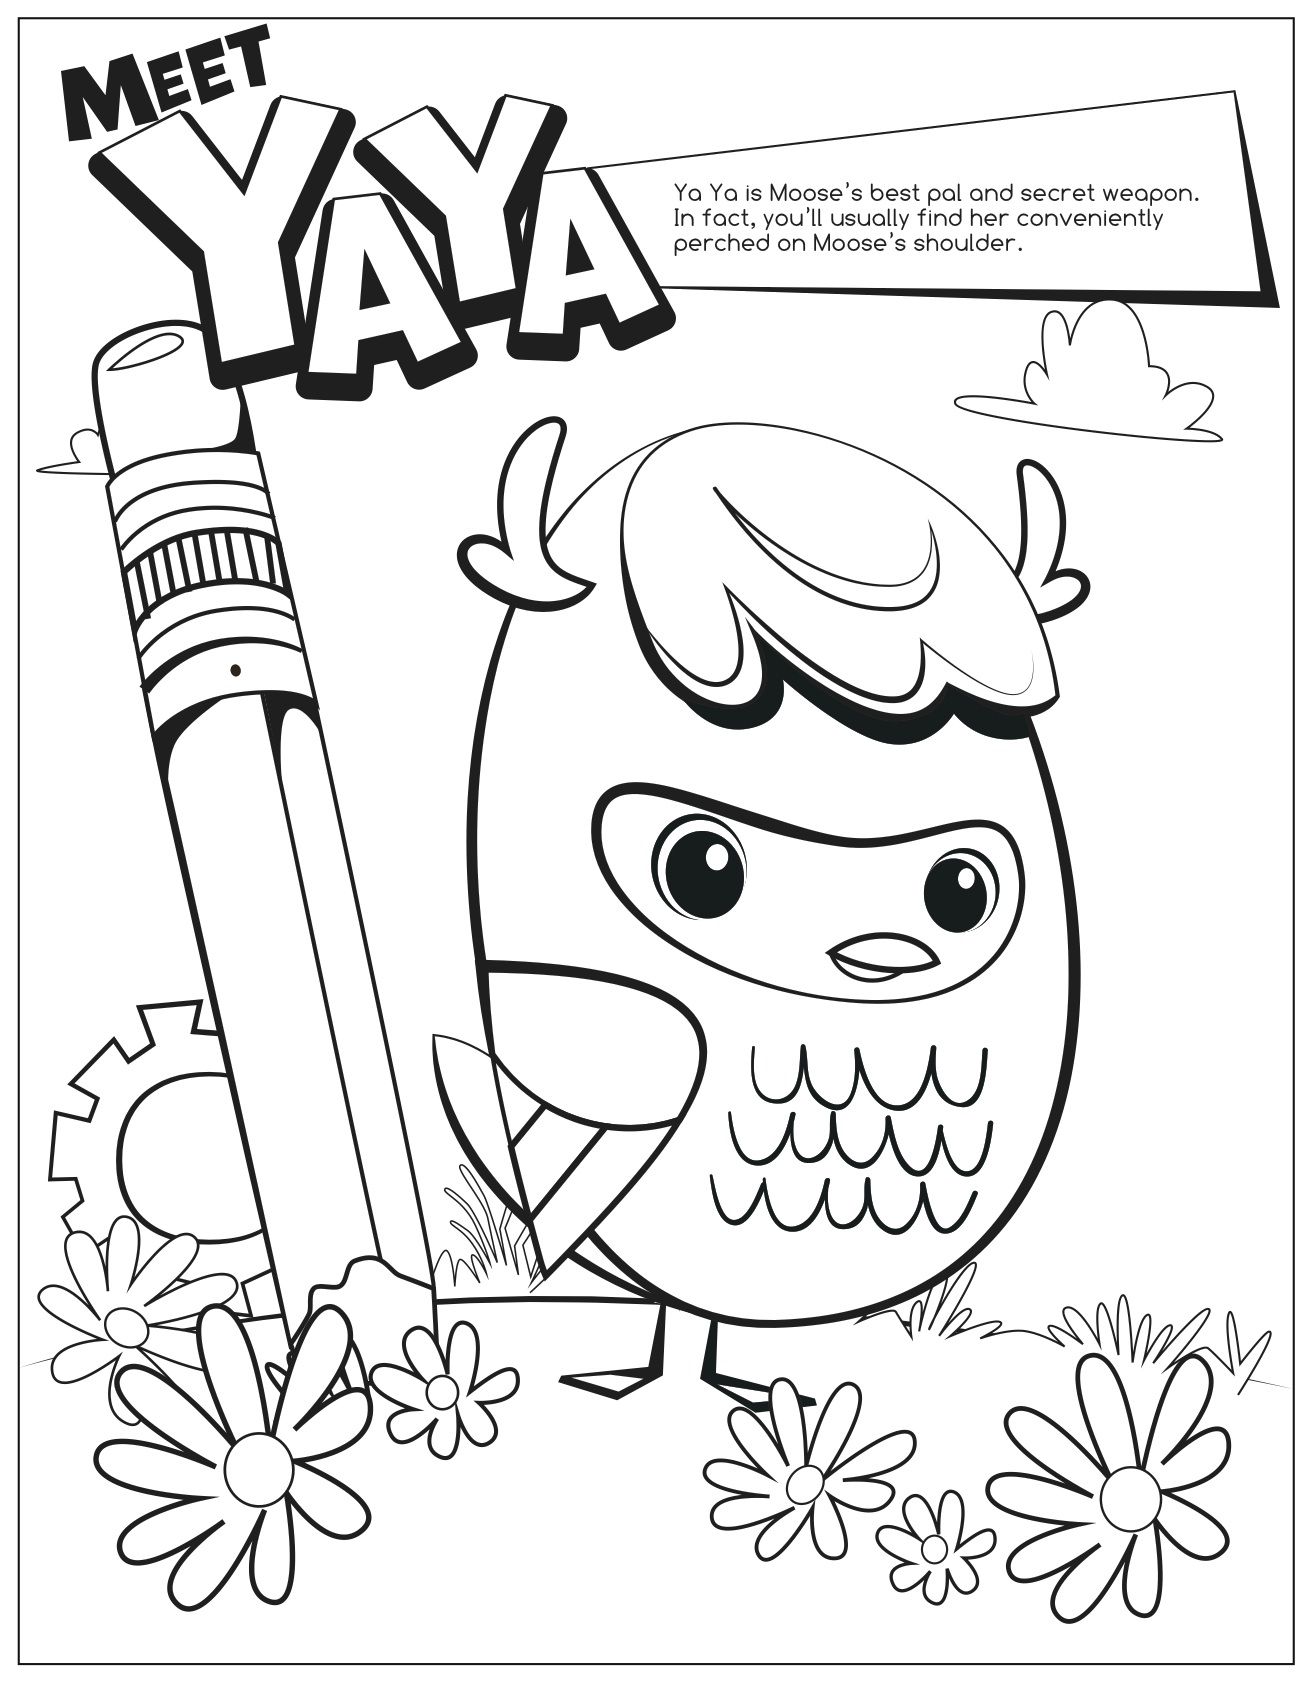 coloring math pictures free printable math coloring pages for kids coloring pictures math